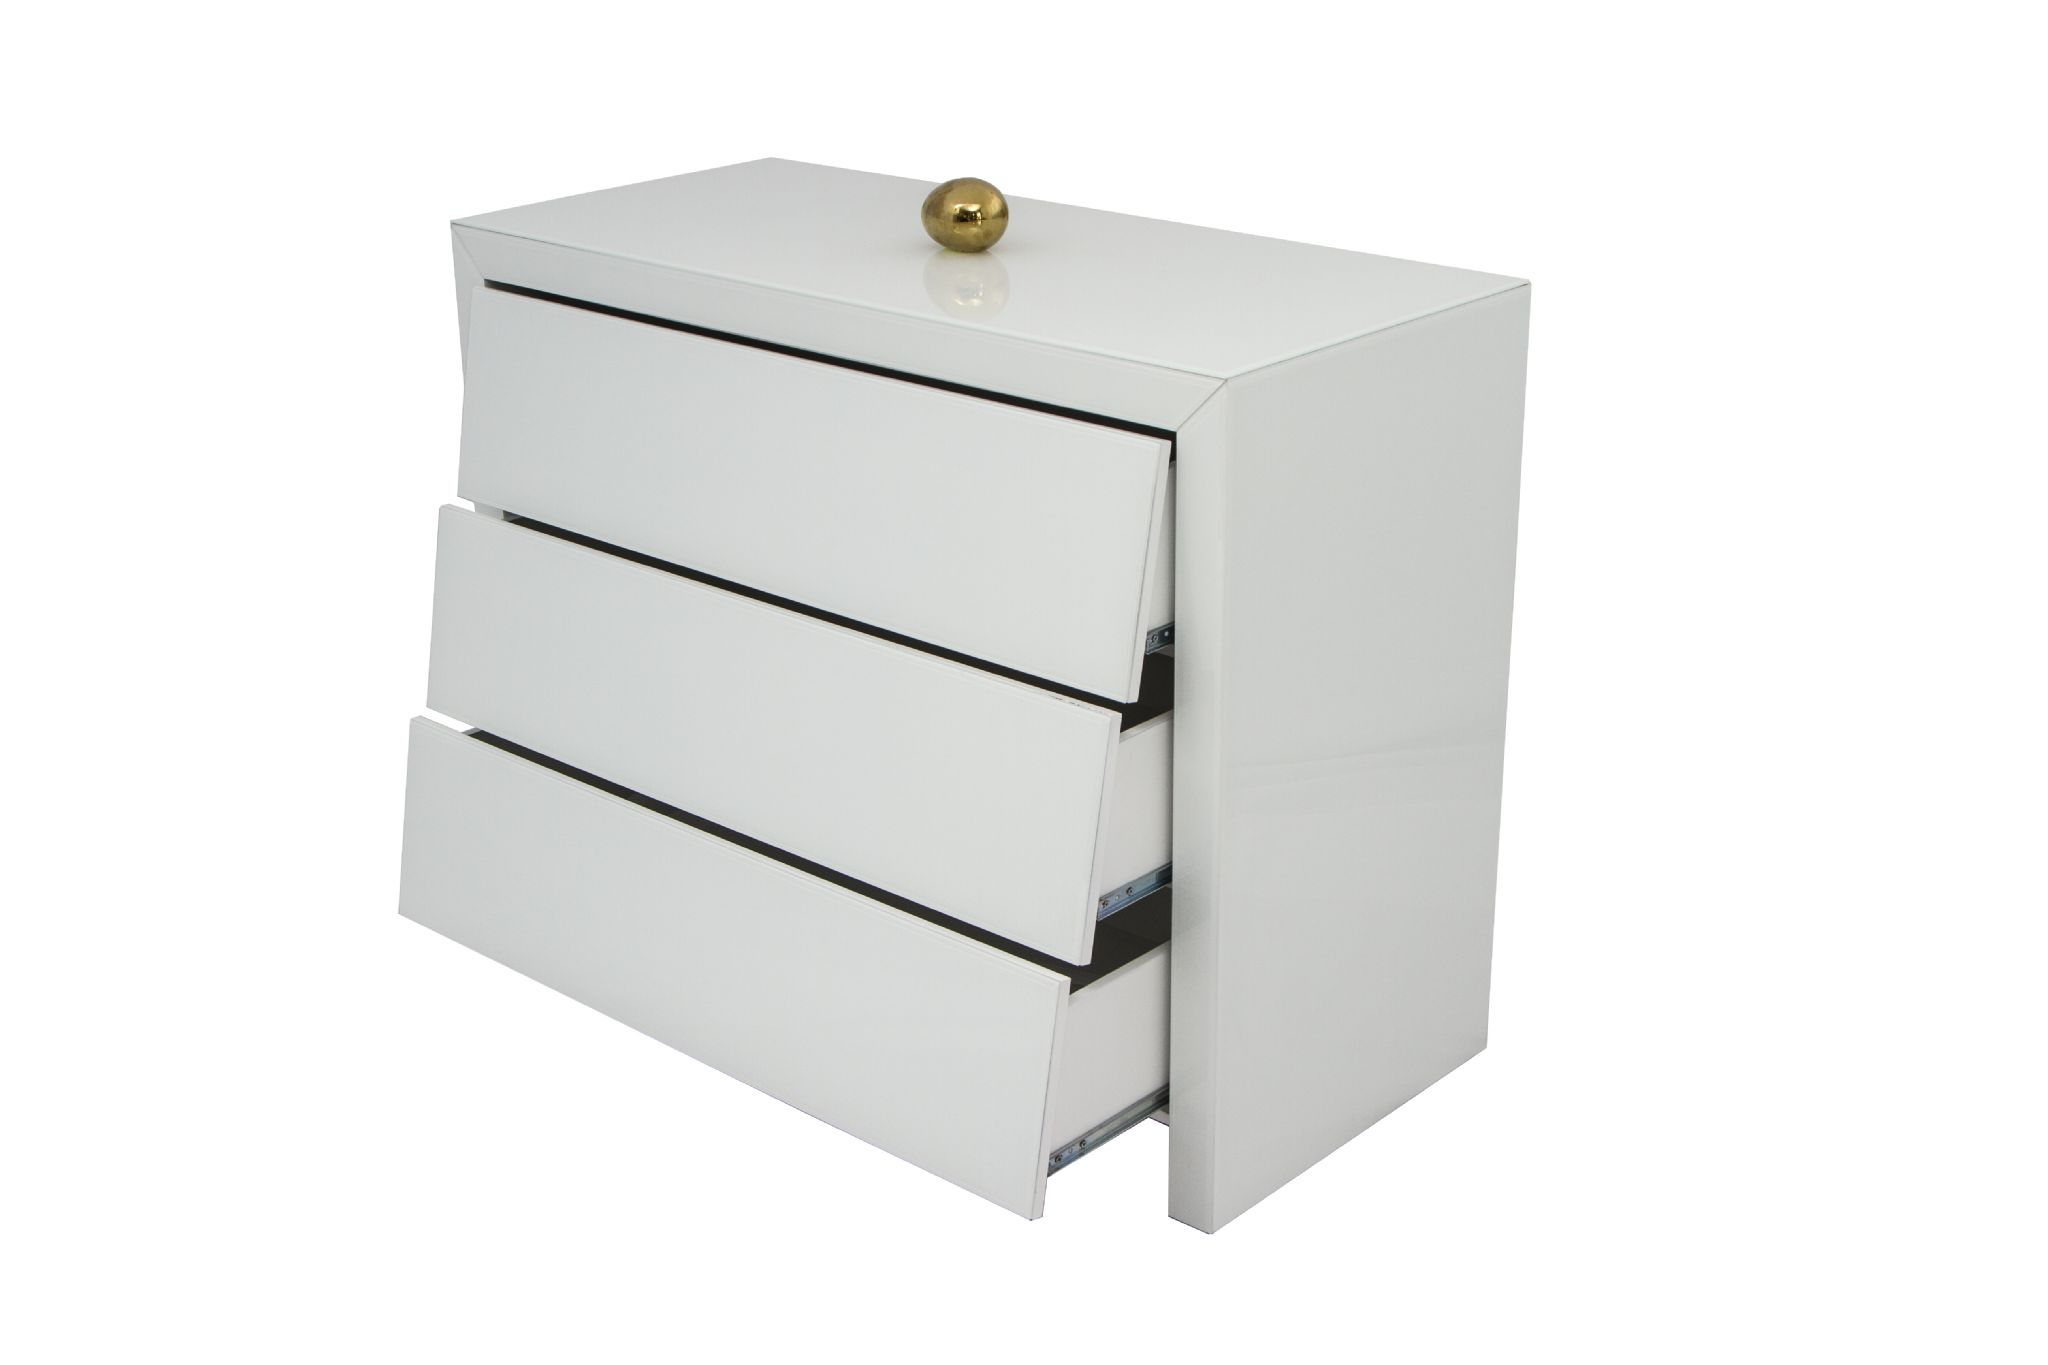 contemporary white mirrored glass angle chest of drawers